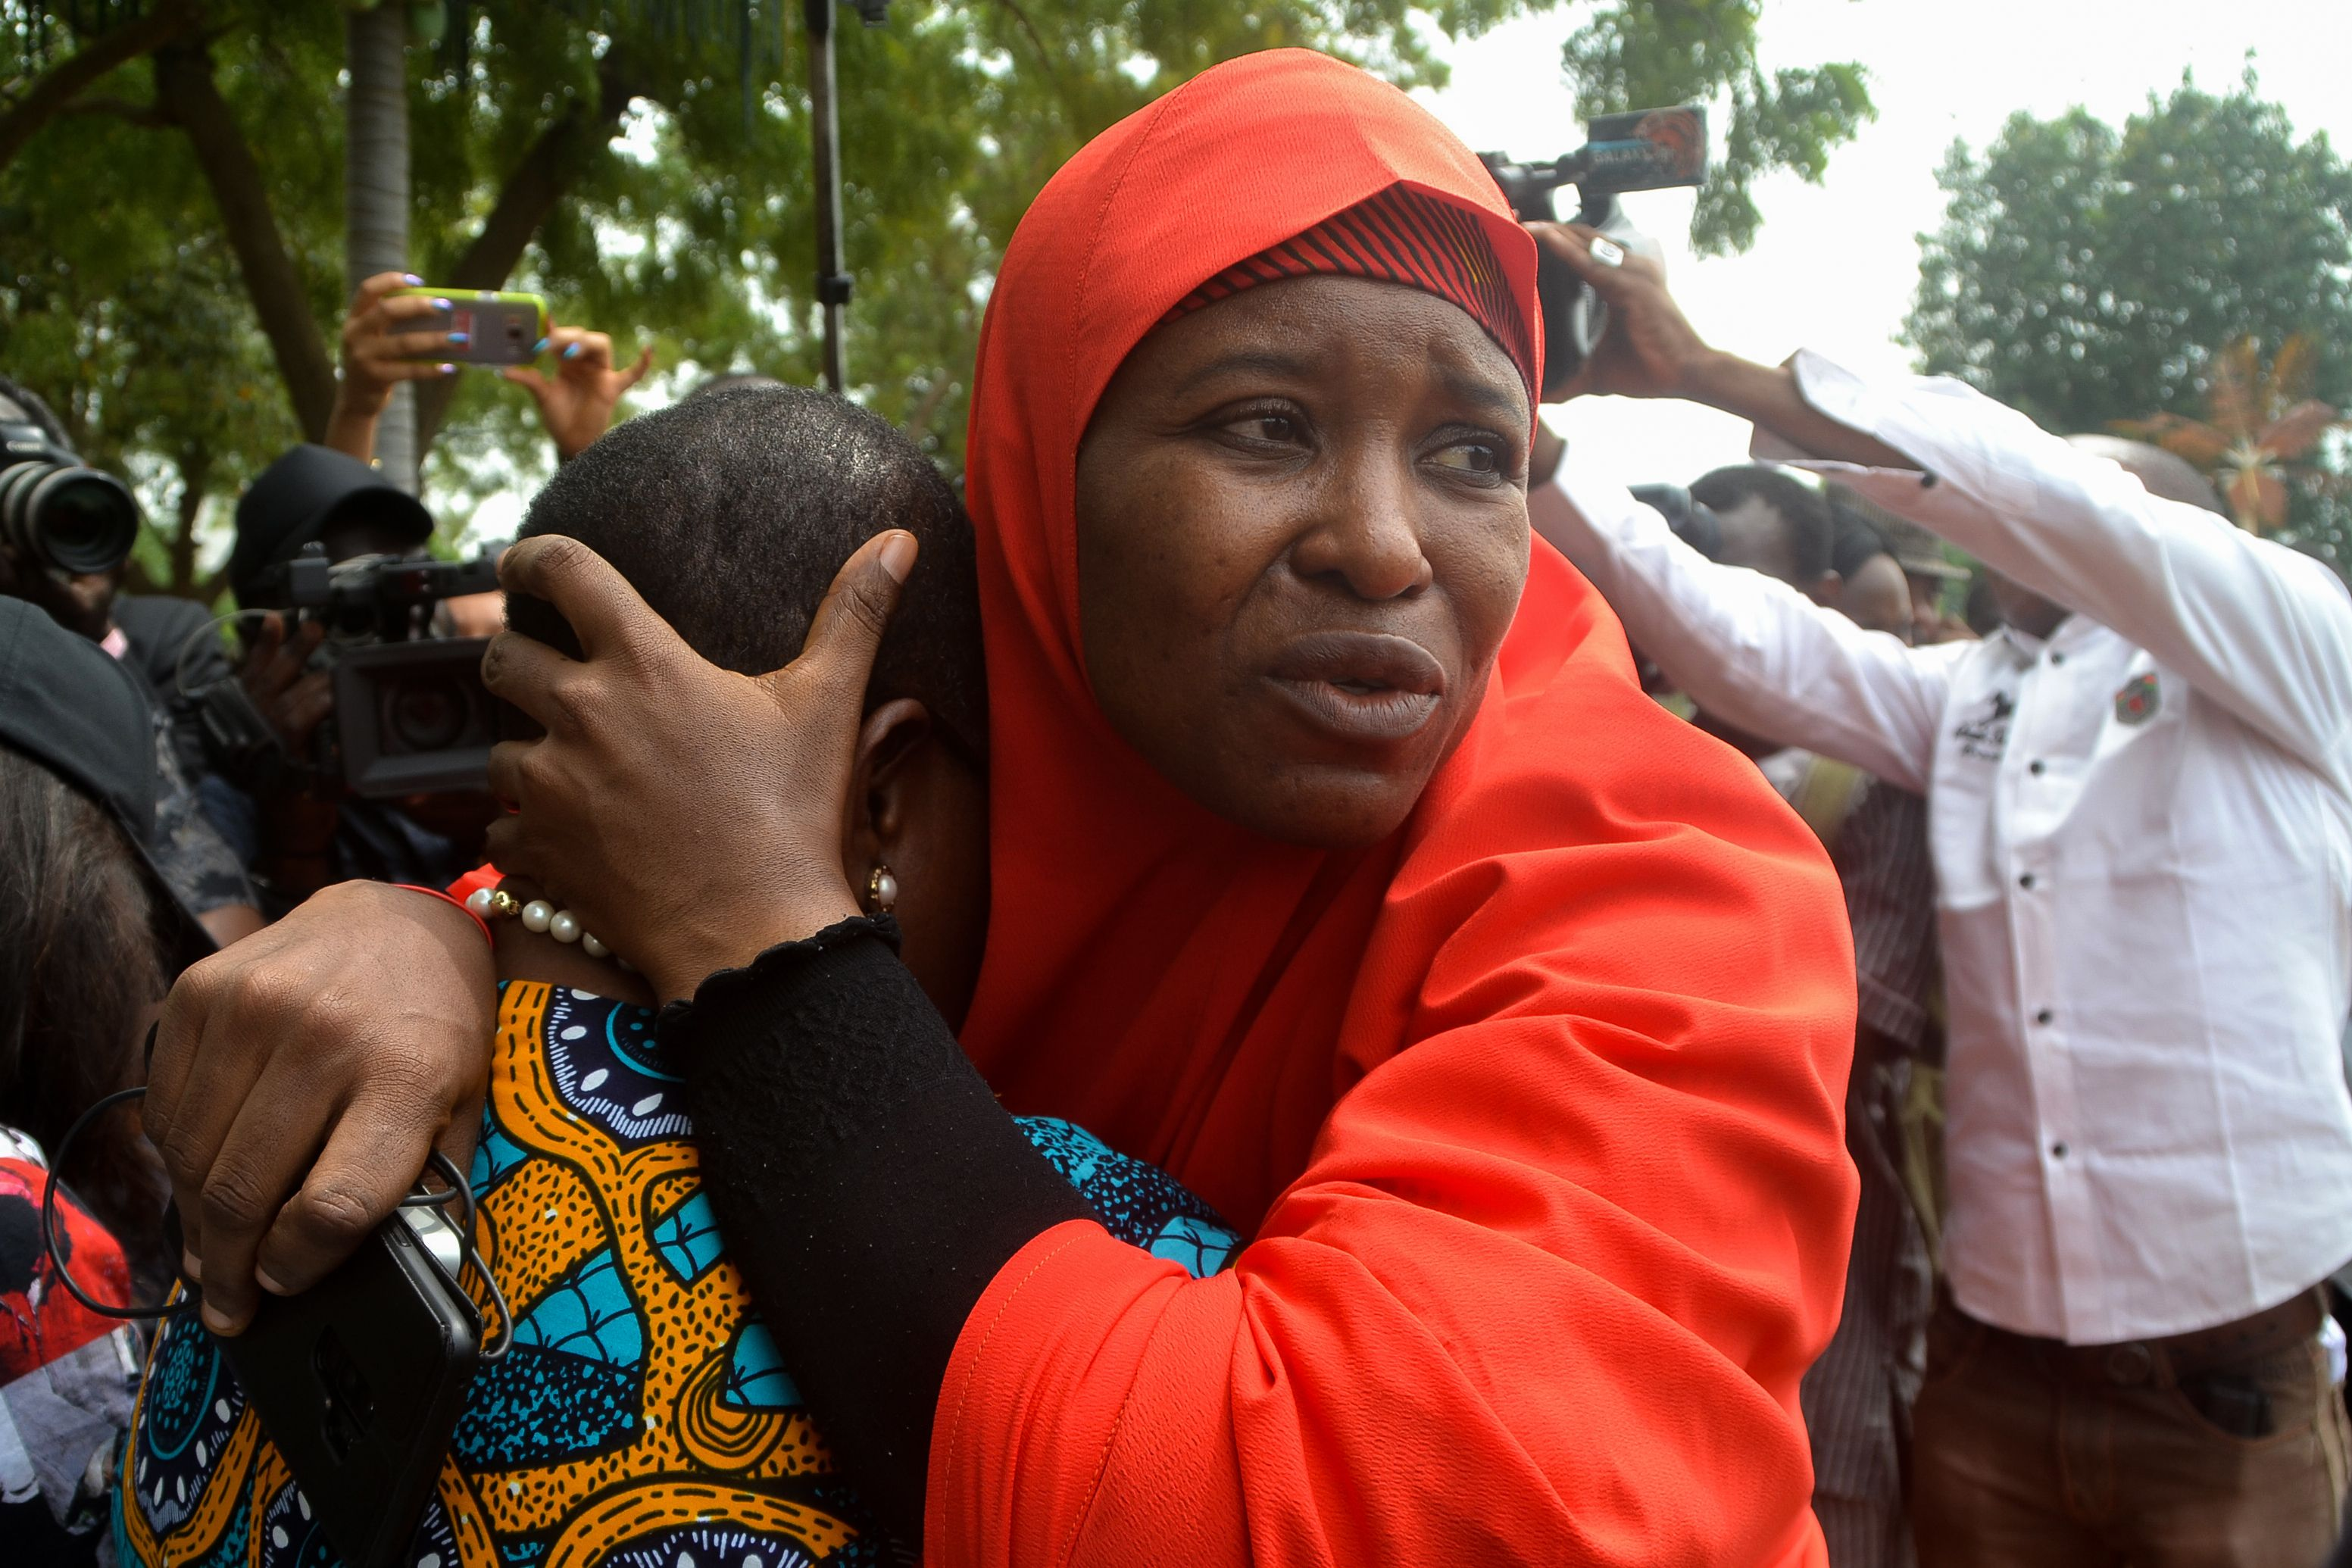 Founder of the Bring Back Our Girls (BBOG) advocacy group Oby Ezekwesili is comforted during a protest in Abuja, Nigeria on Oct. 16, 2018, following the killing of a kidnapped female Red Cross worker by Islamic State-allied Boko Haram jihadists.